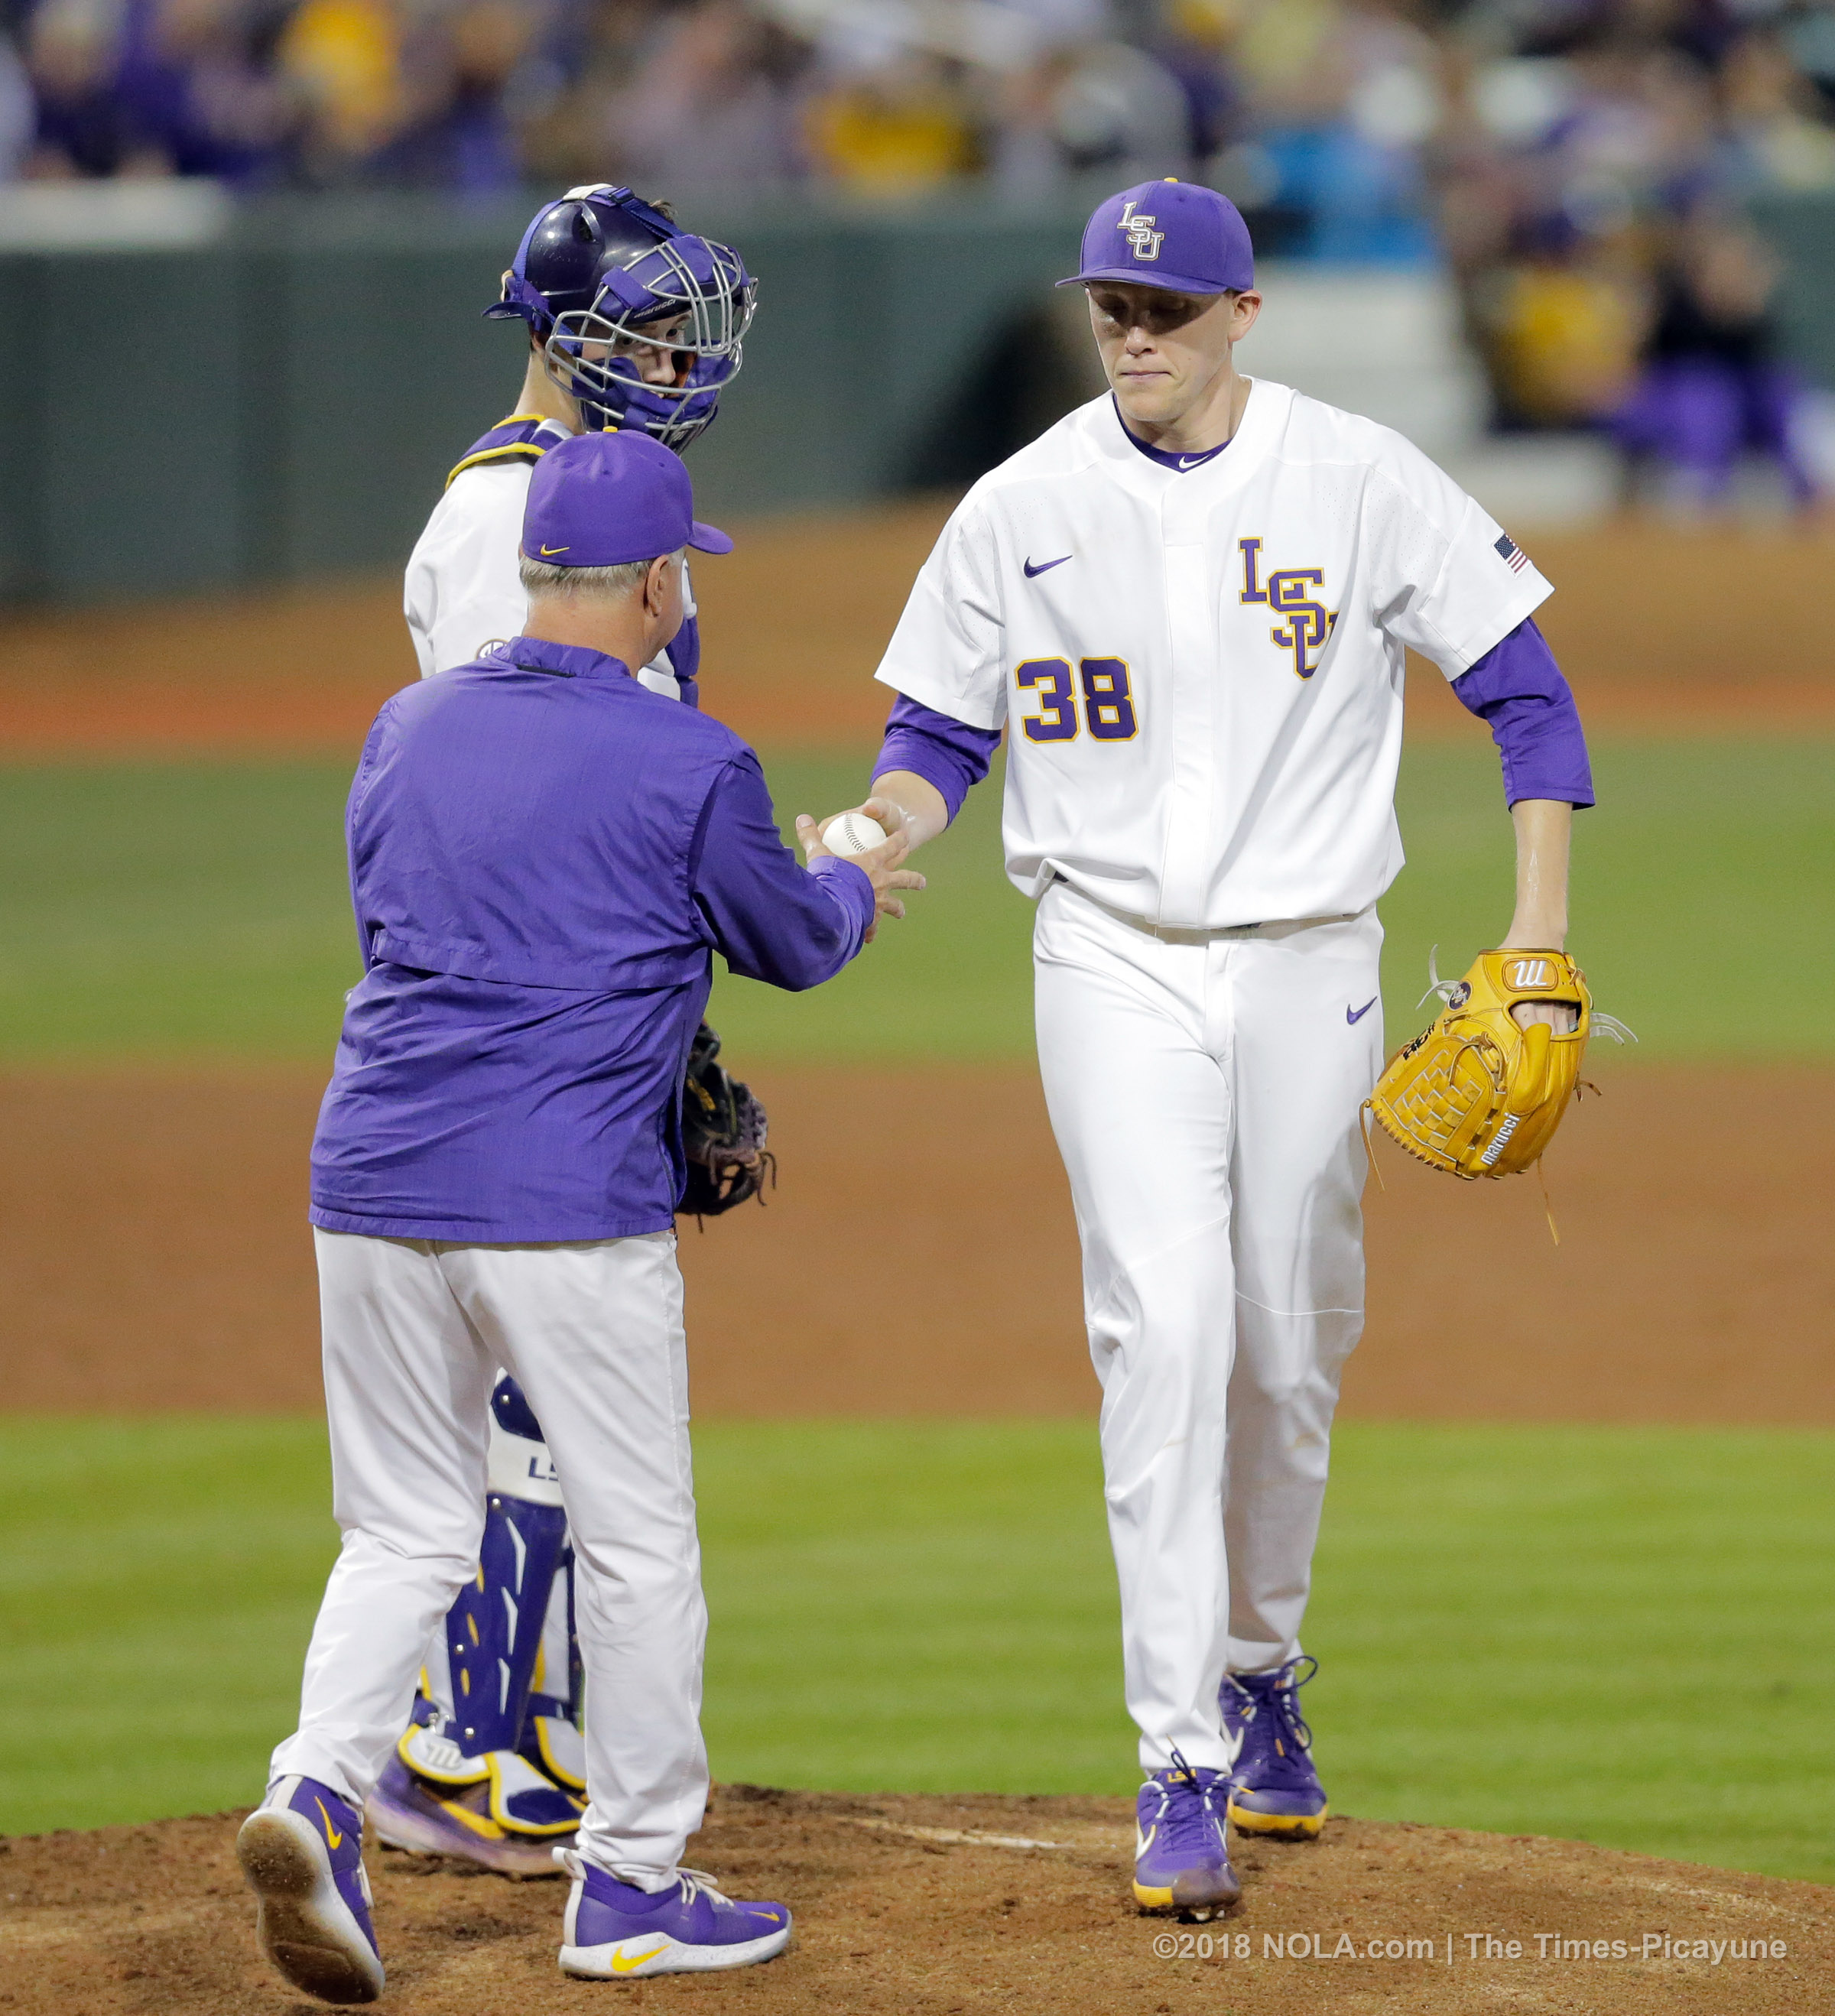 How the hitless Josh Smith came up clutch in LSU's walk ...